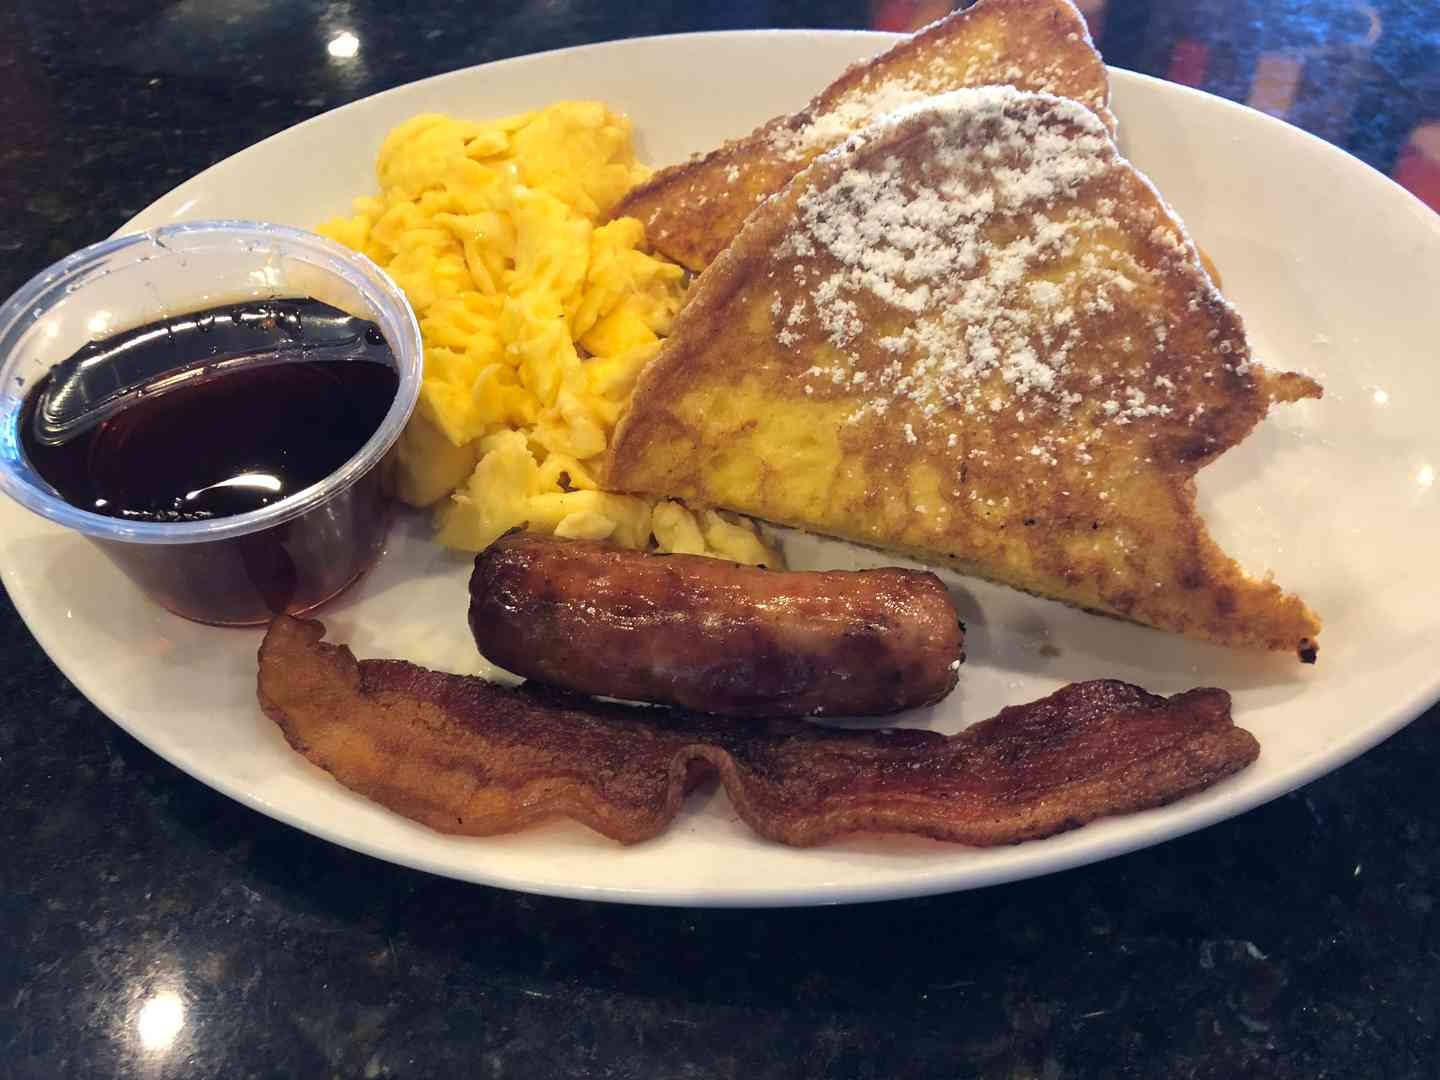 1 Egg, 2 strips Bacon or Sausage links, & 2 slices of French Toast